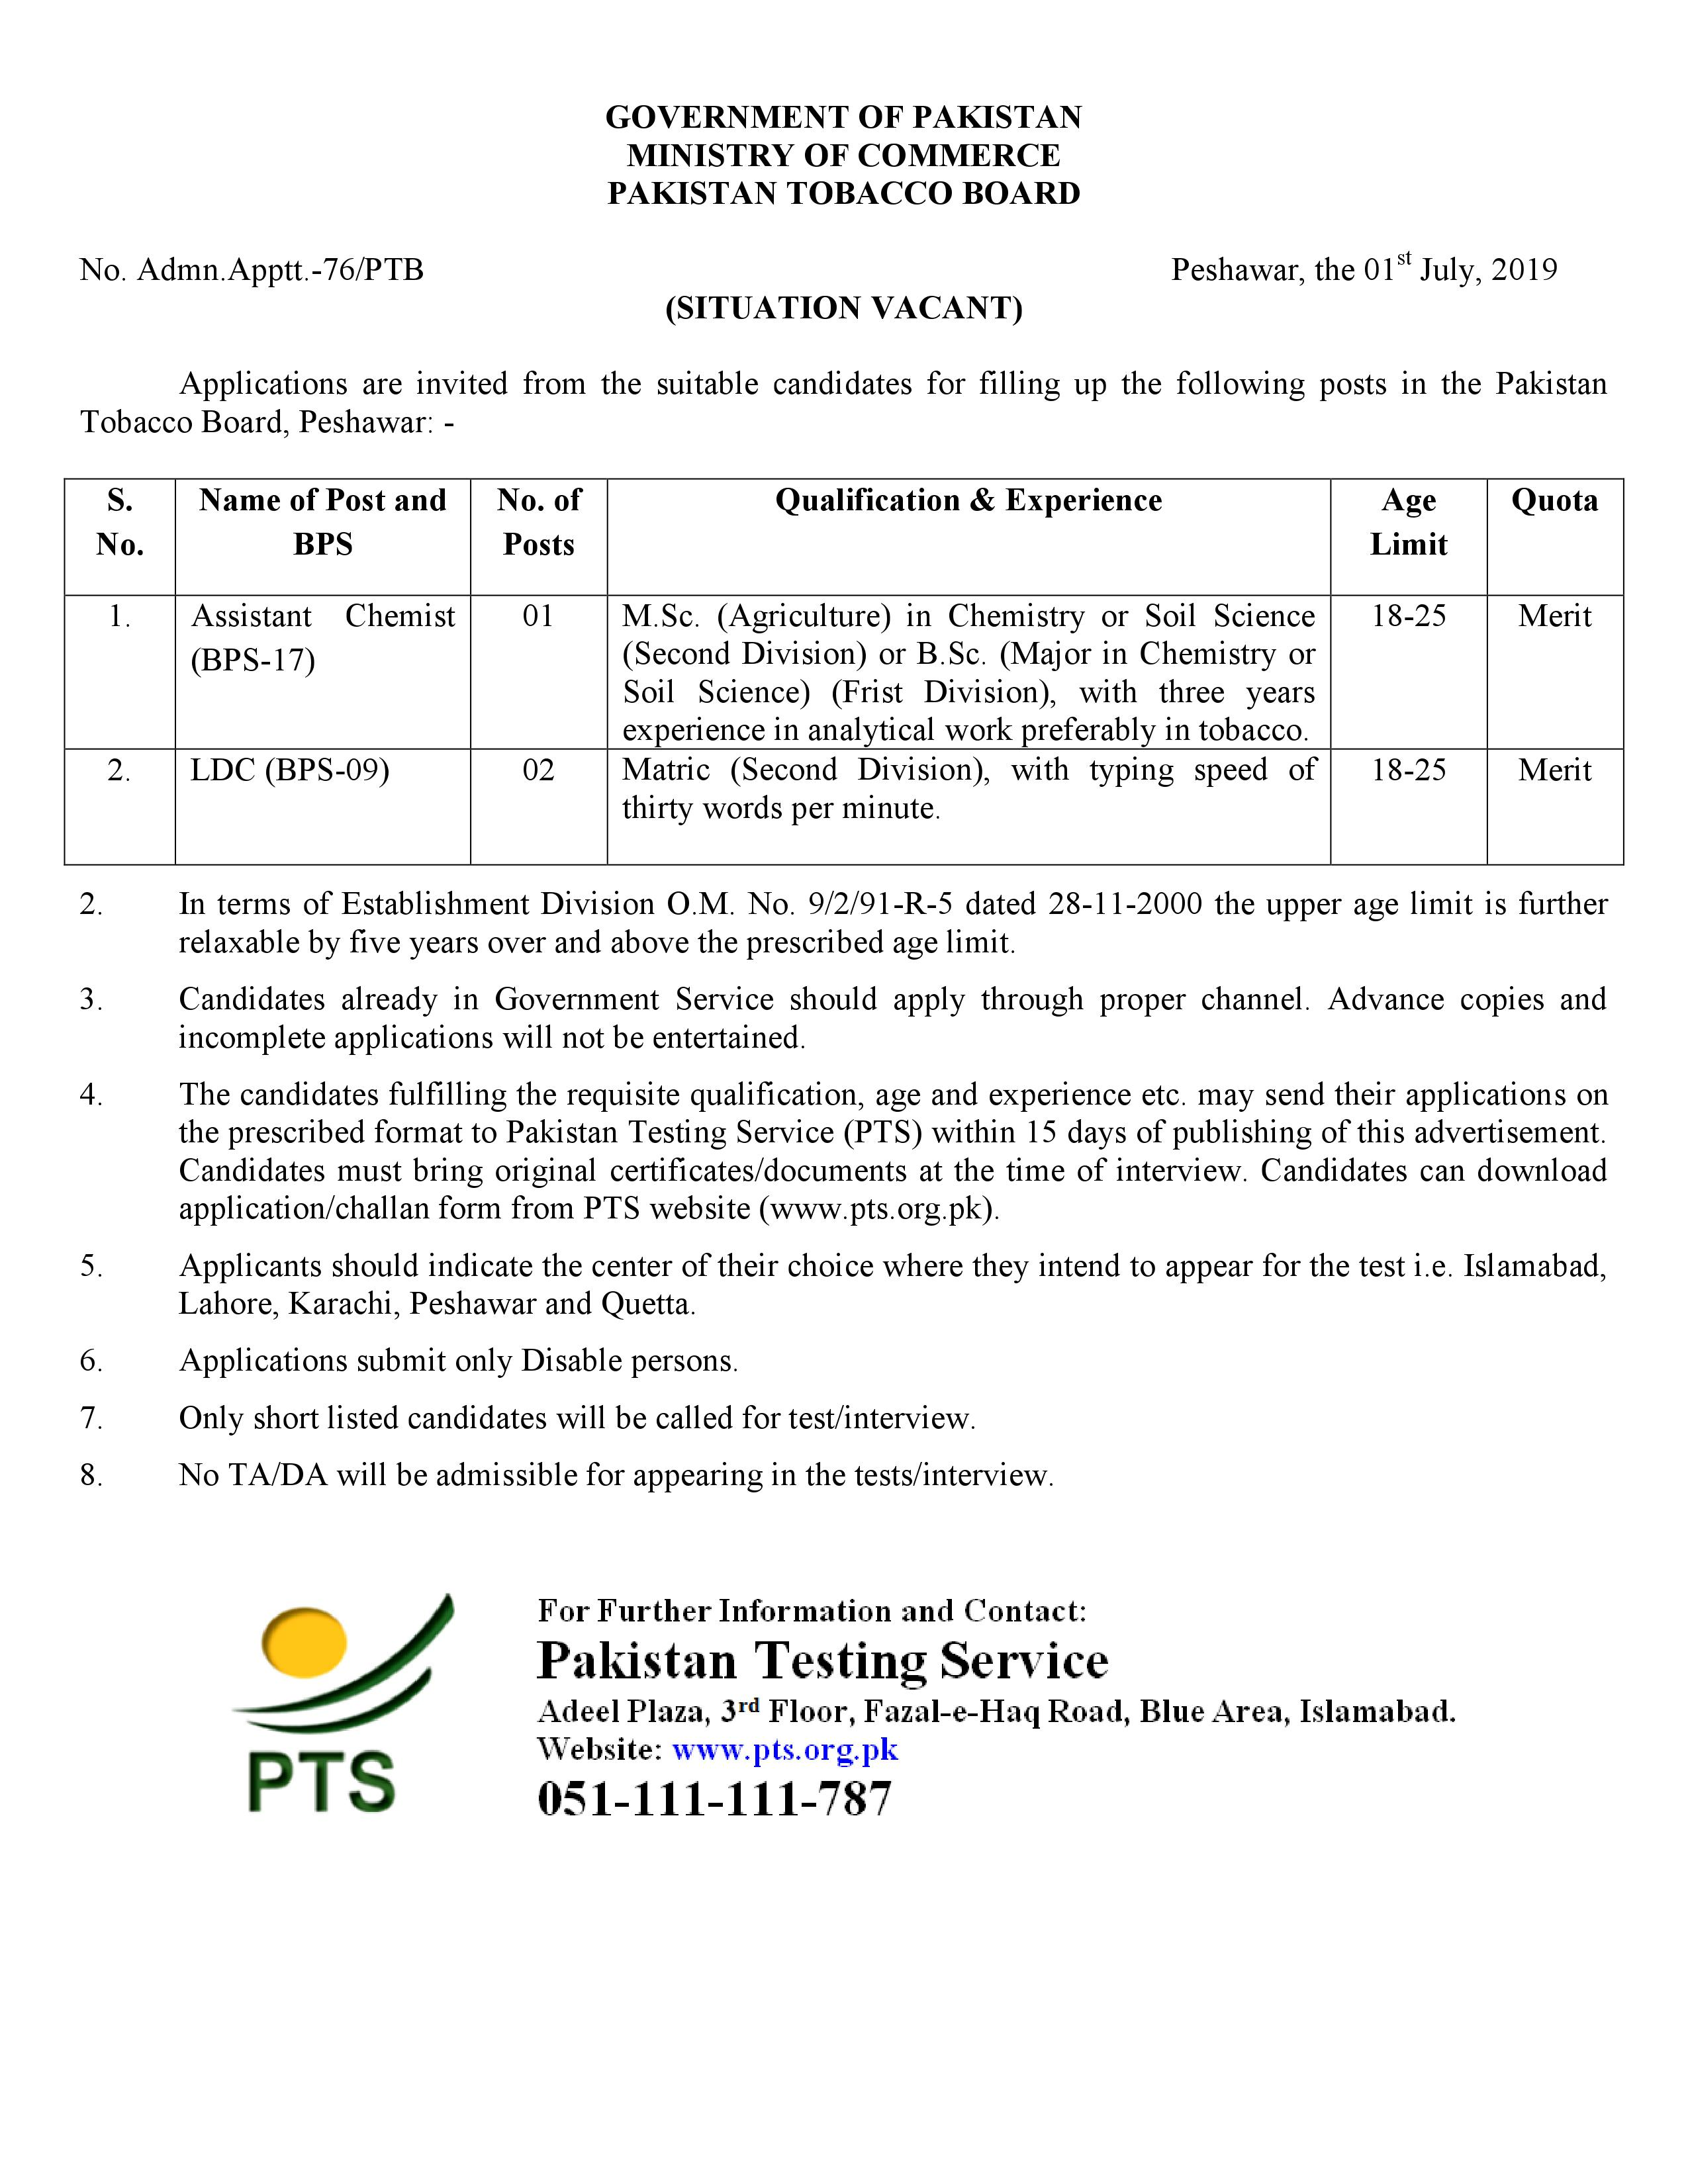 Pakistan Tobacco Board PTB Jobs Ministry of Commerce PTS Test Roll No Slip